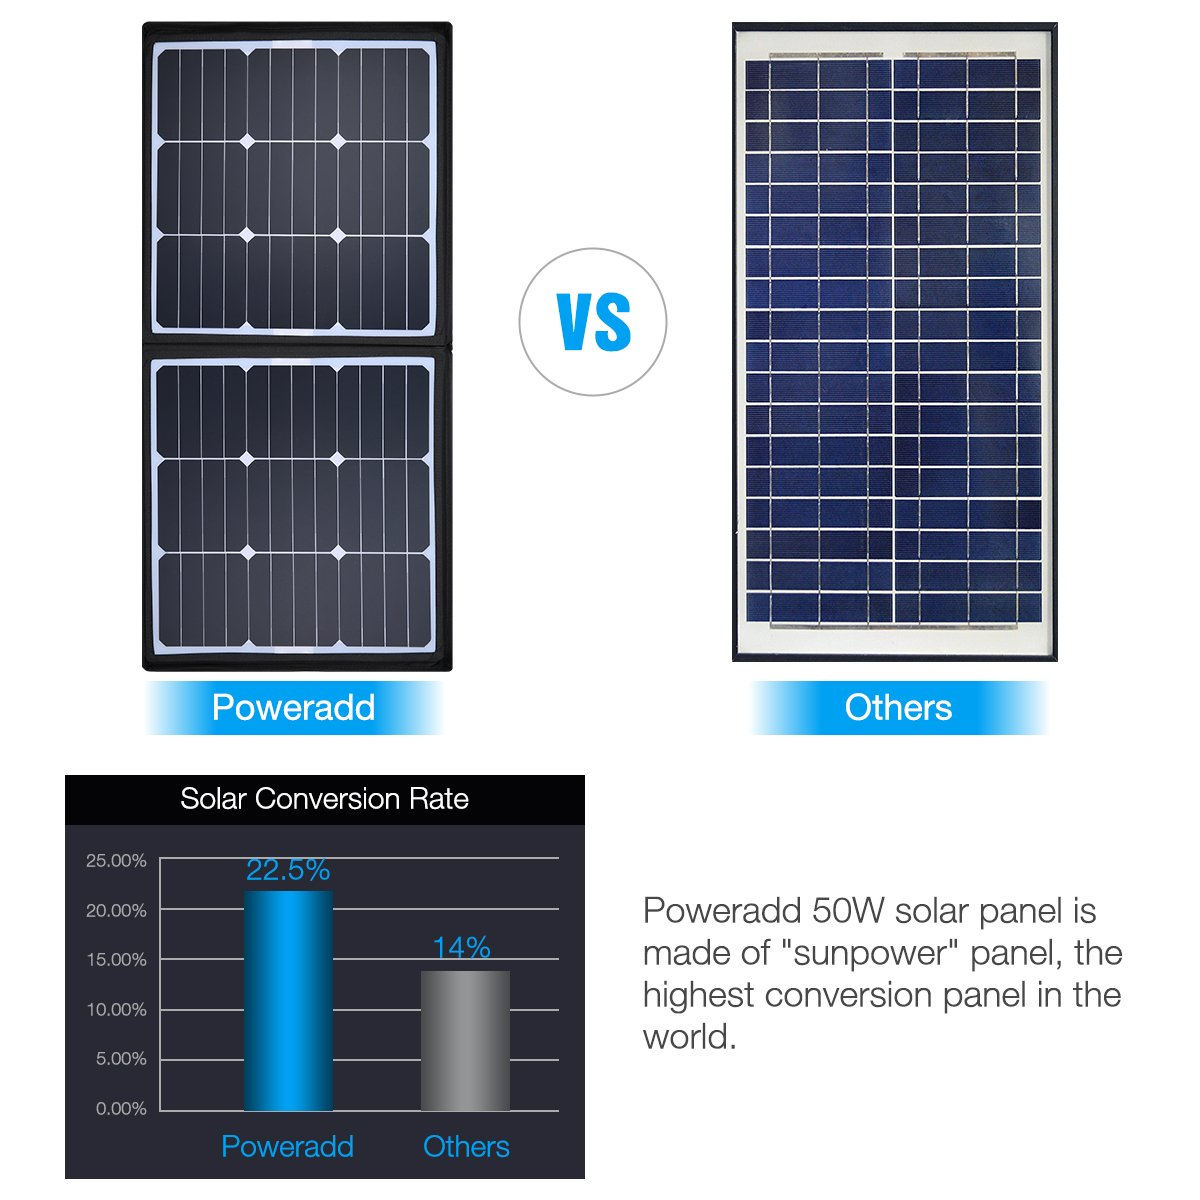 POWERADD [High Efficiency] 50W Solar Charger, 18V 12V SUNPOWER Solar Panel for Laptop, iPhone X / 8/8 Plus, iPad Pro, iPad mini, Macbook, iPad Samsung, ChargerCenter, Island Region and Country Tours by POWERADD (Image #3)